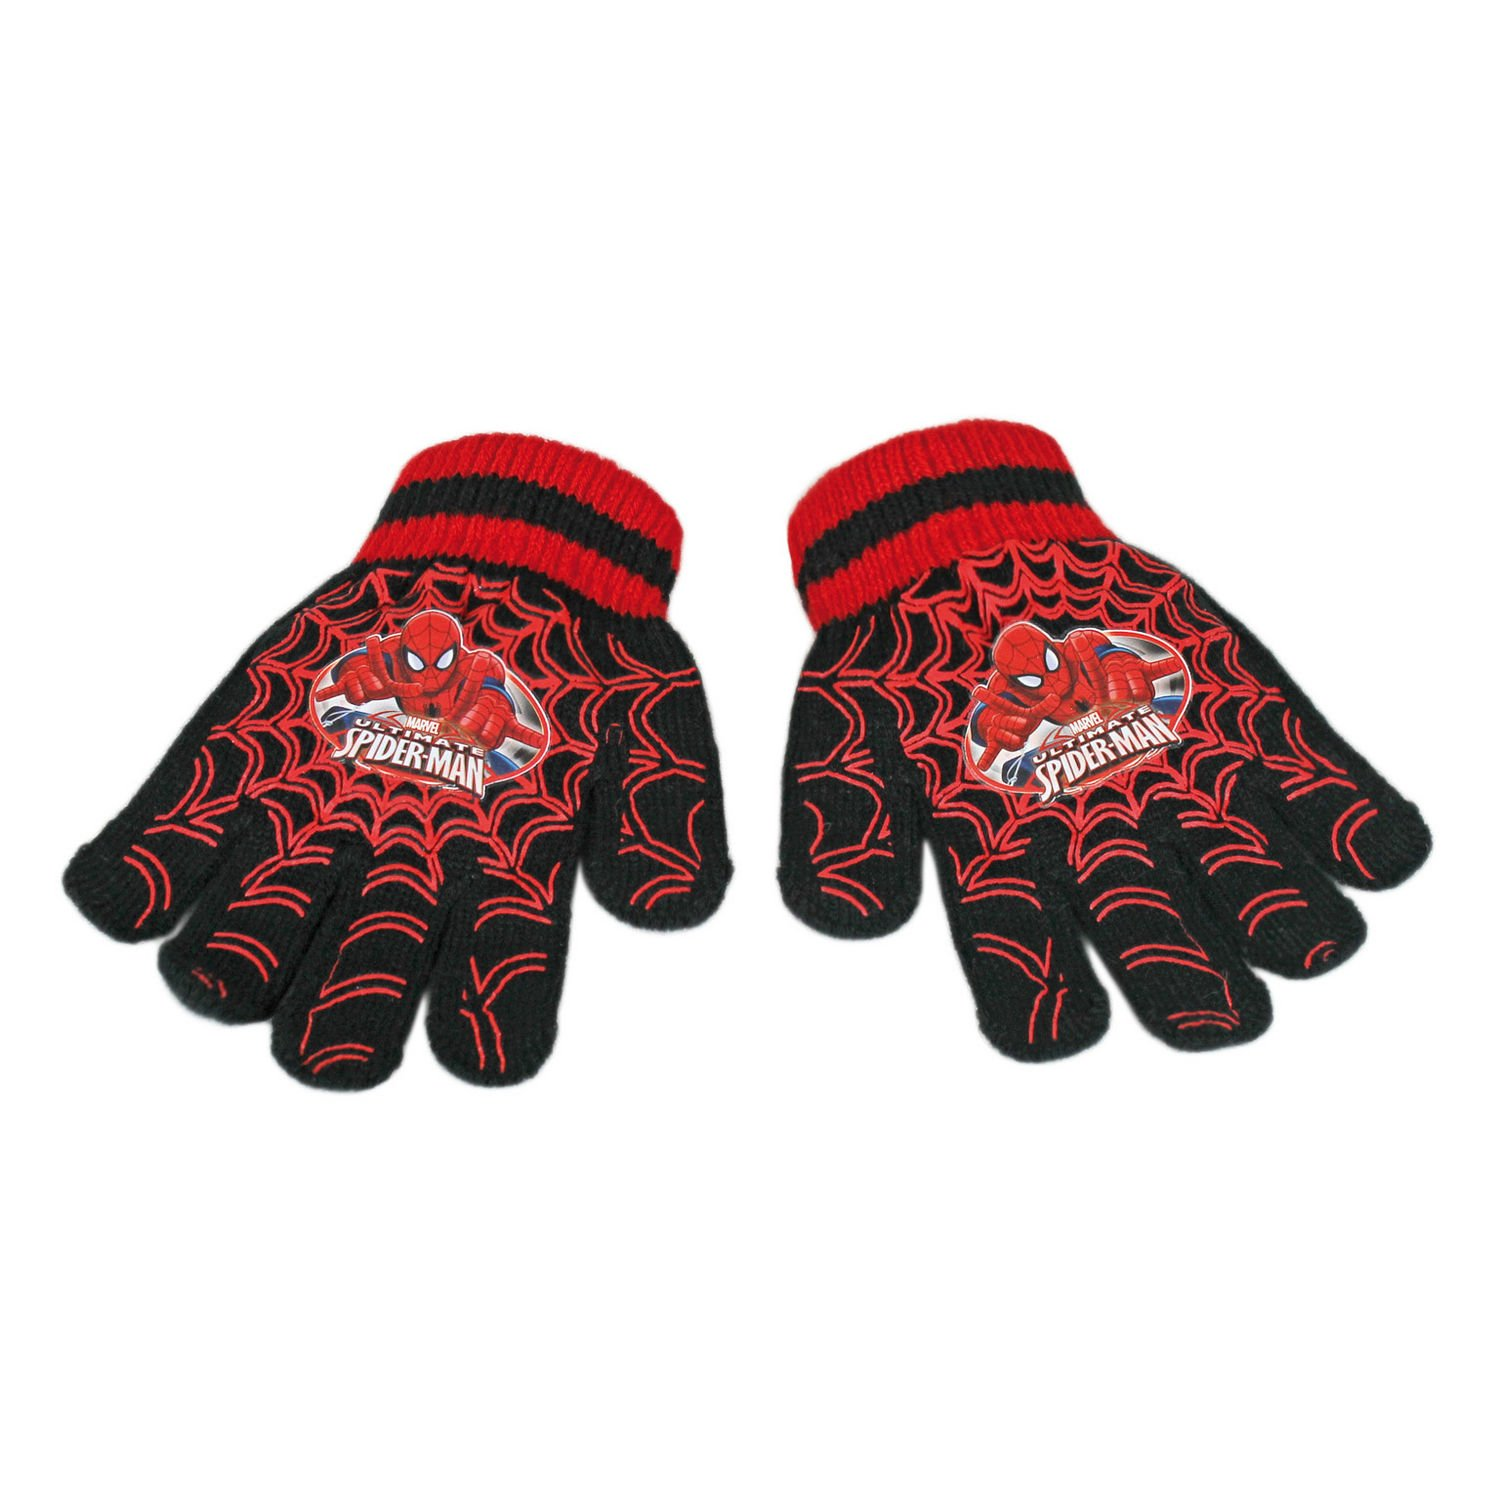 Boy's Spider-Man Gloves Boy's Spider-Man Gloves Marvel